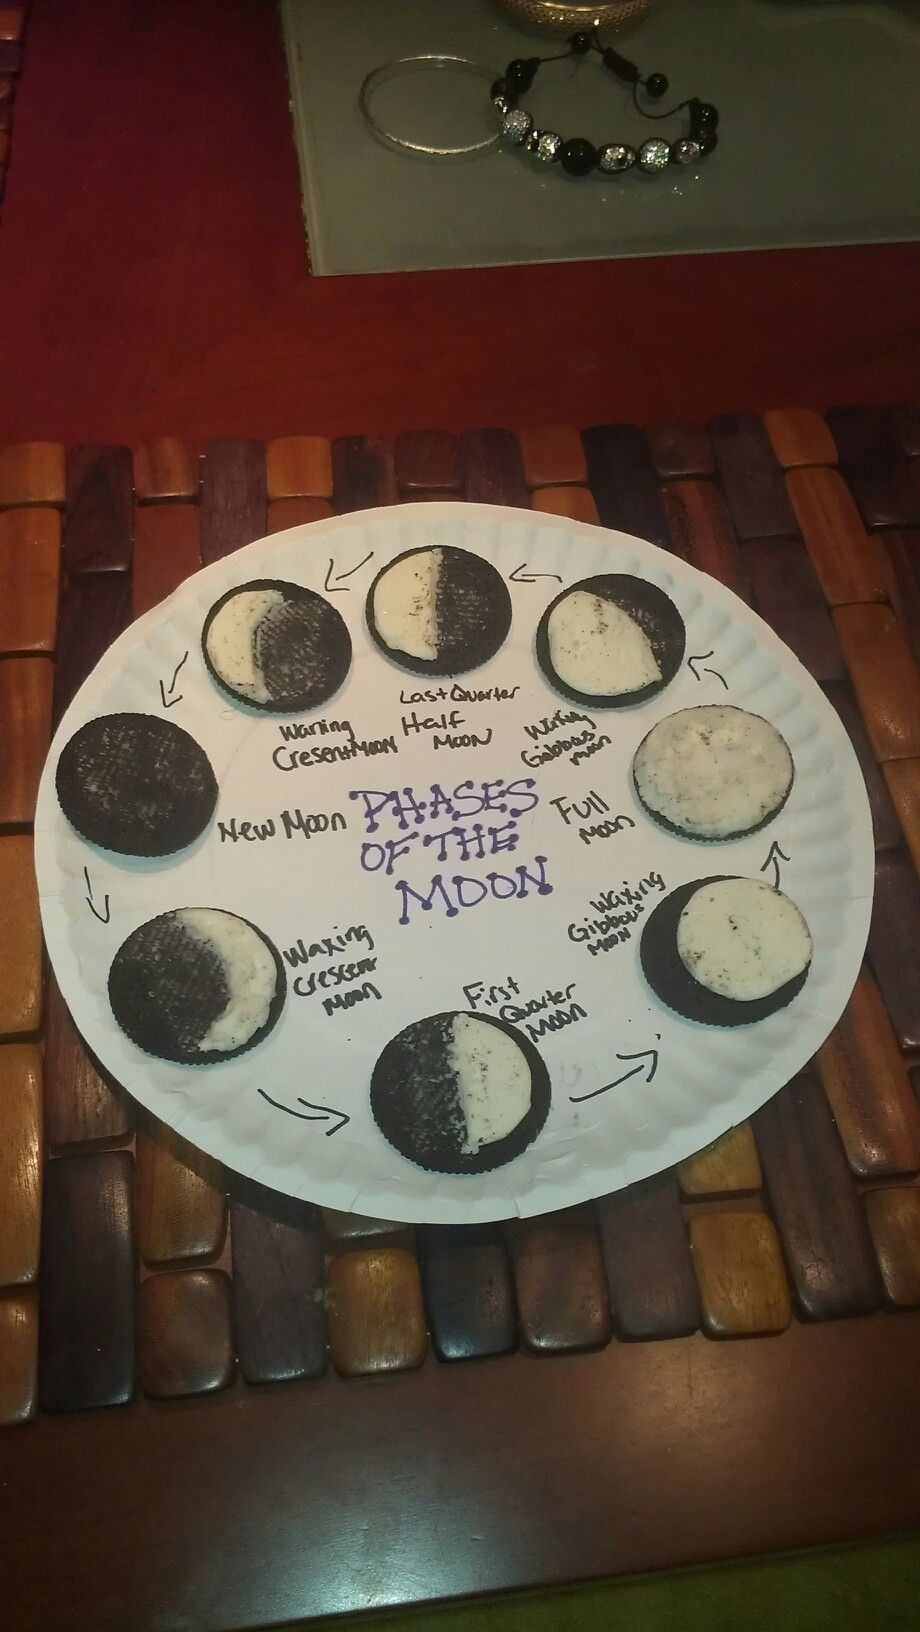 oreo phases of the moon   science project  my son came home upset because he had to draw the